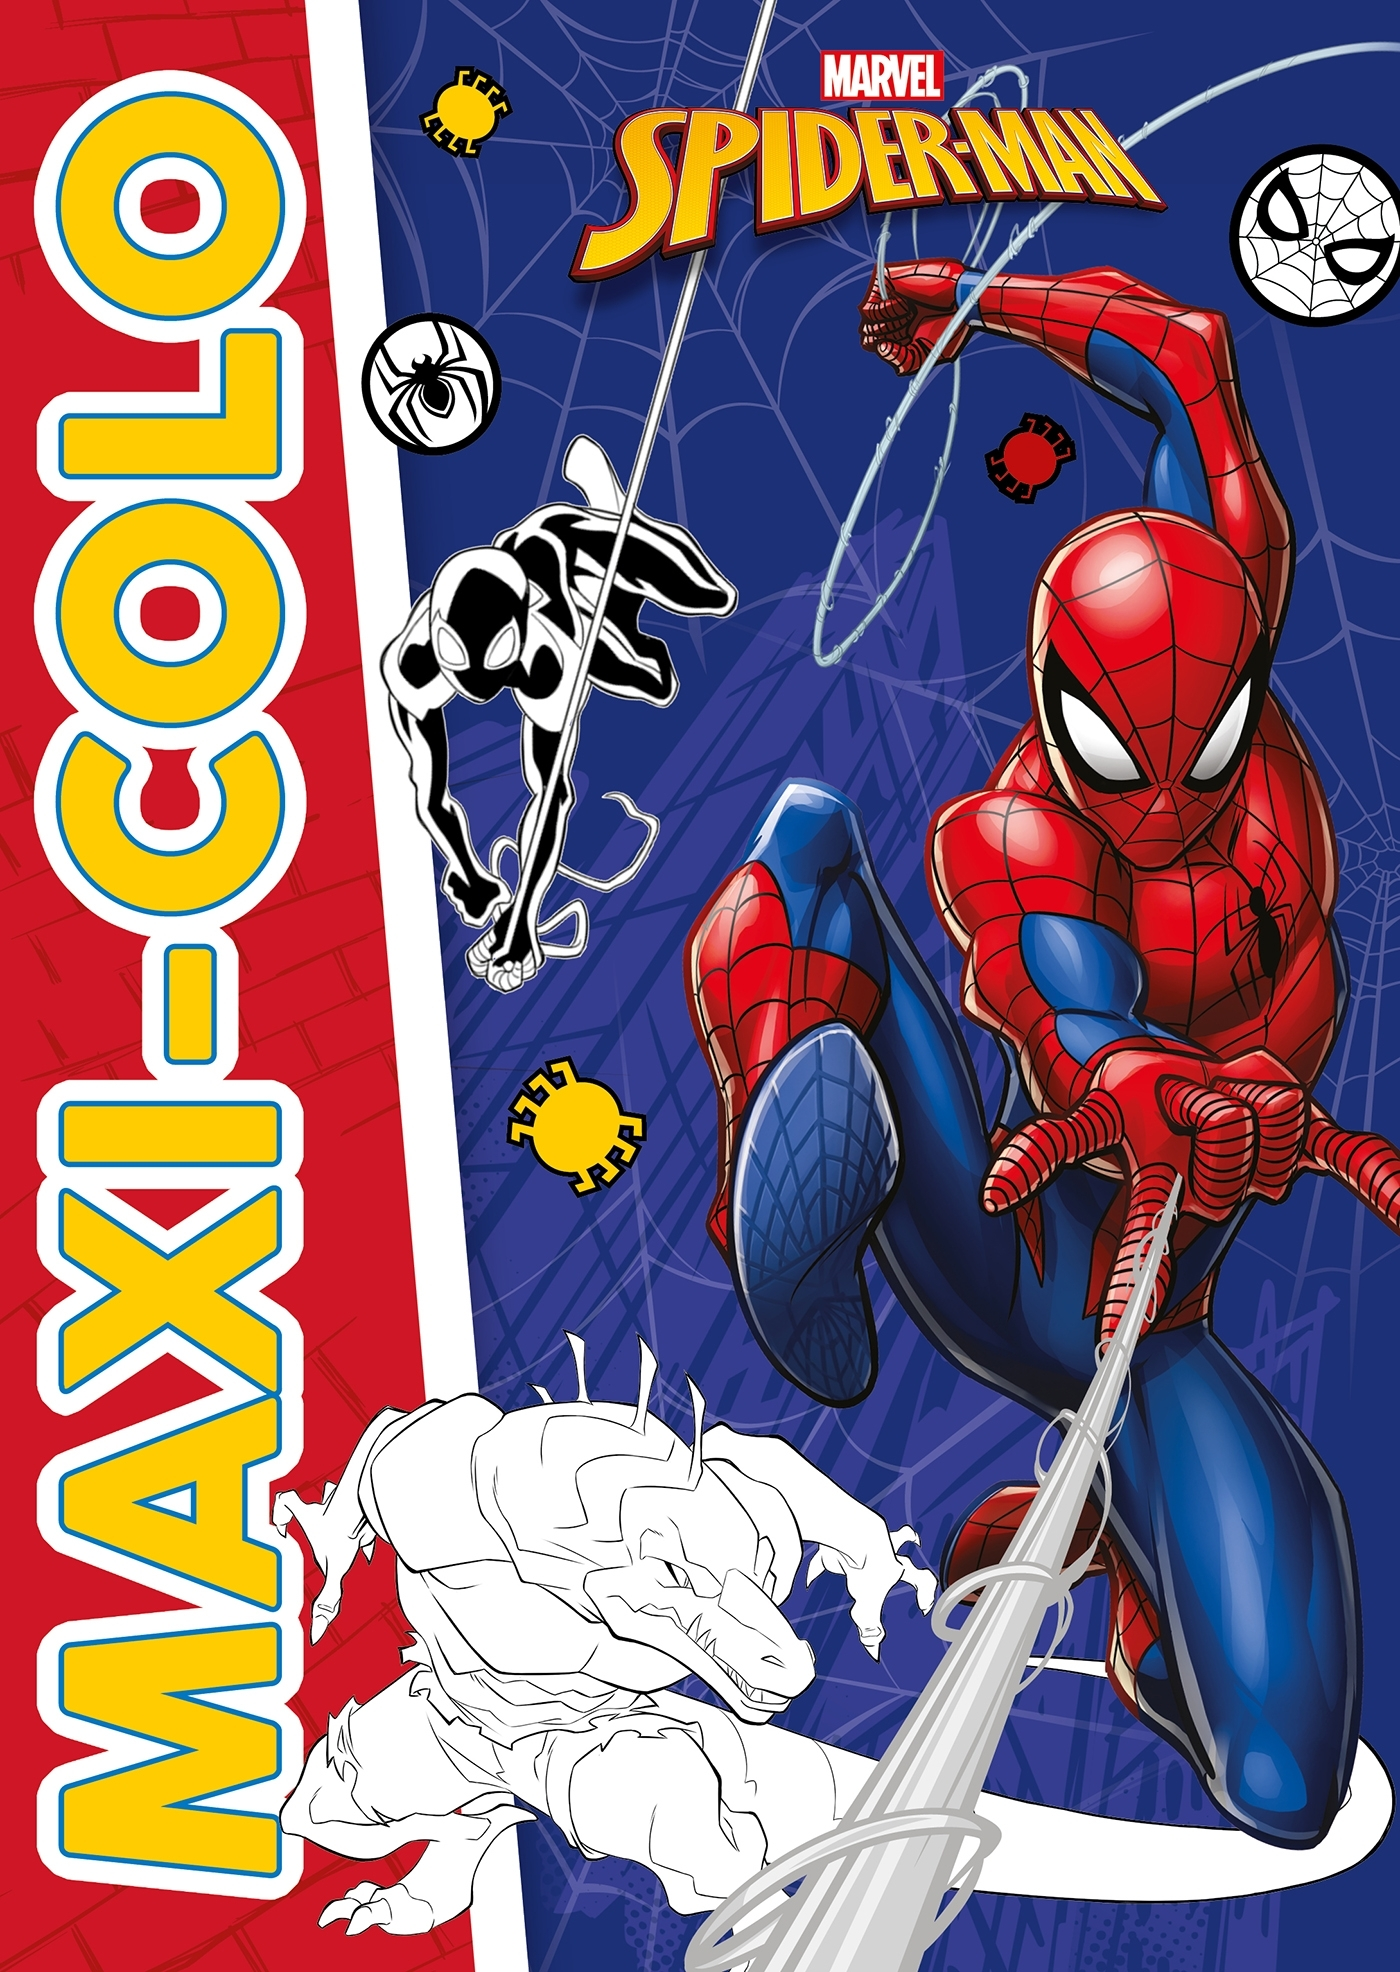 SPIDER-MAN - MAXI COLO - MARVEL